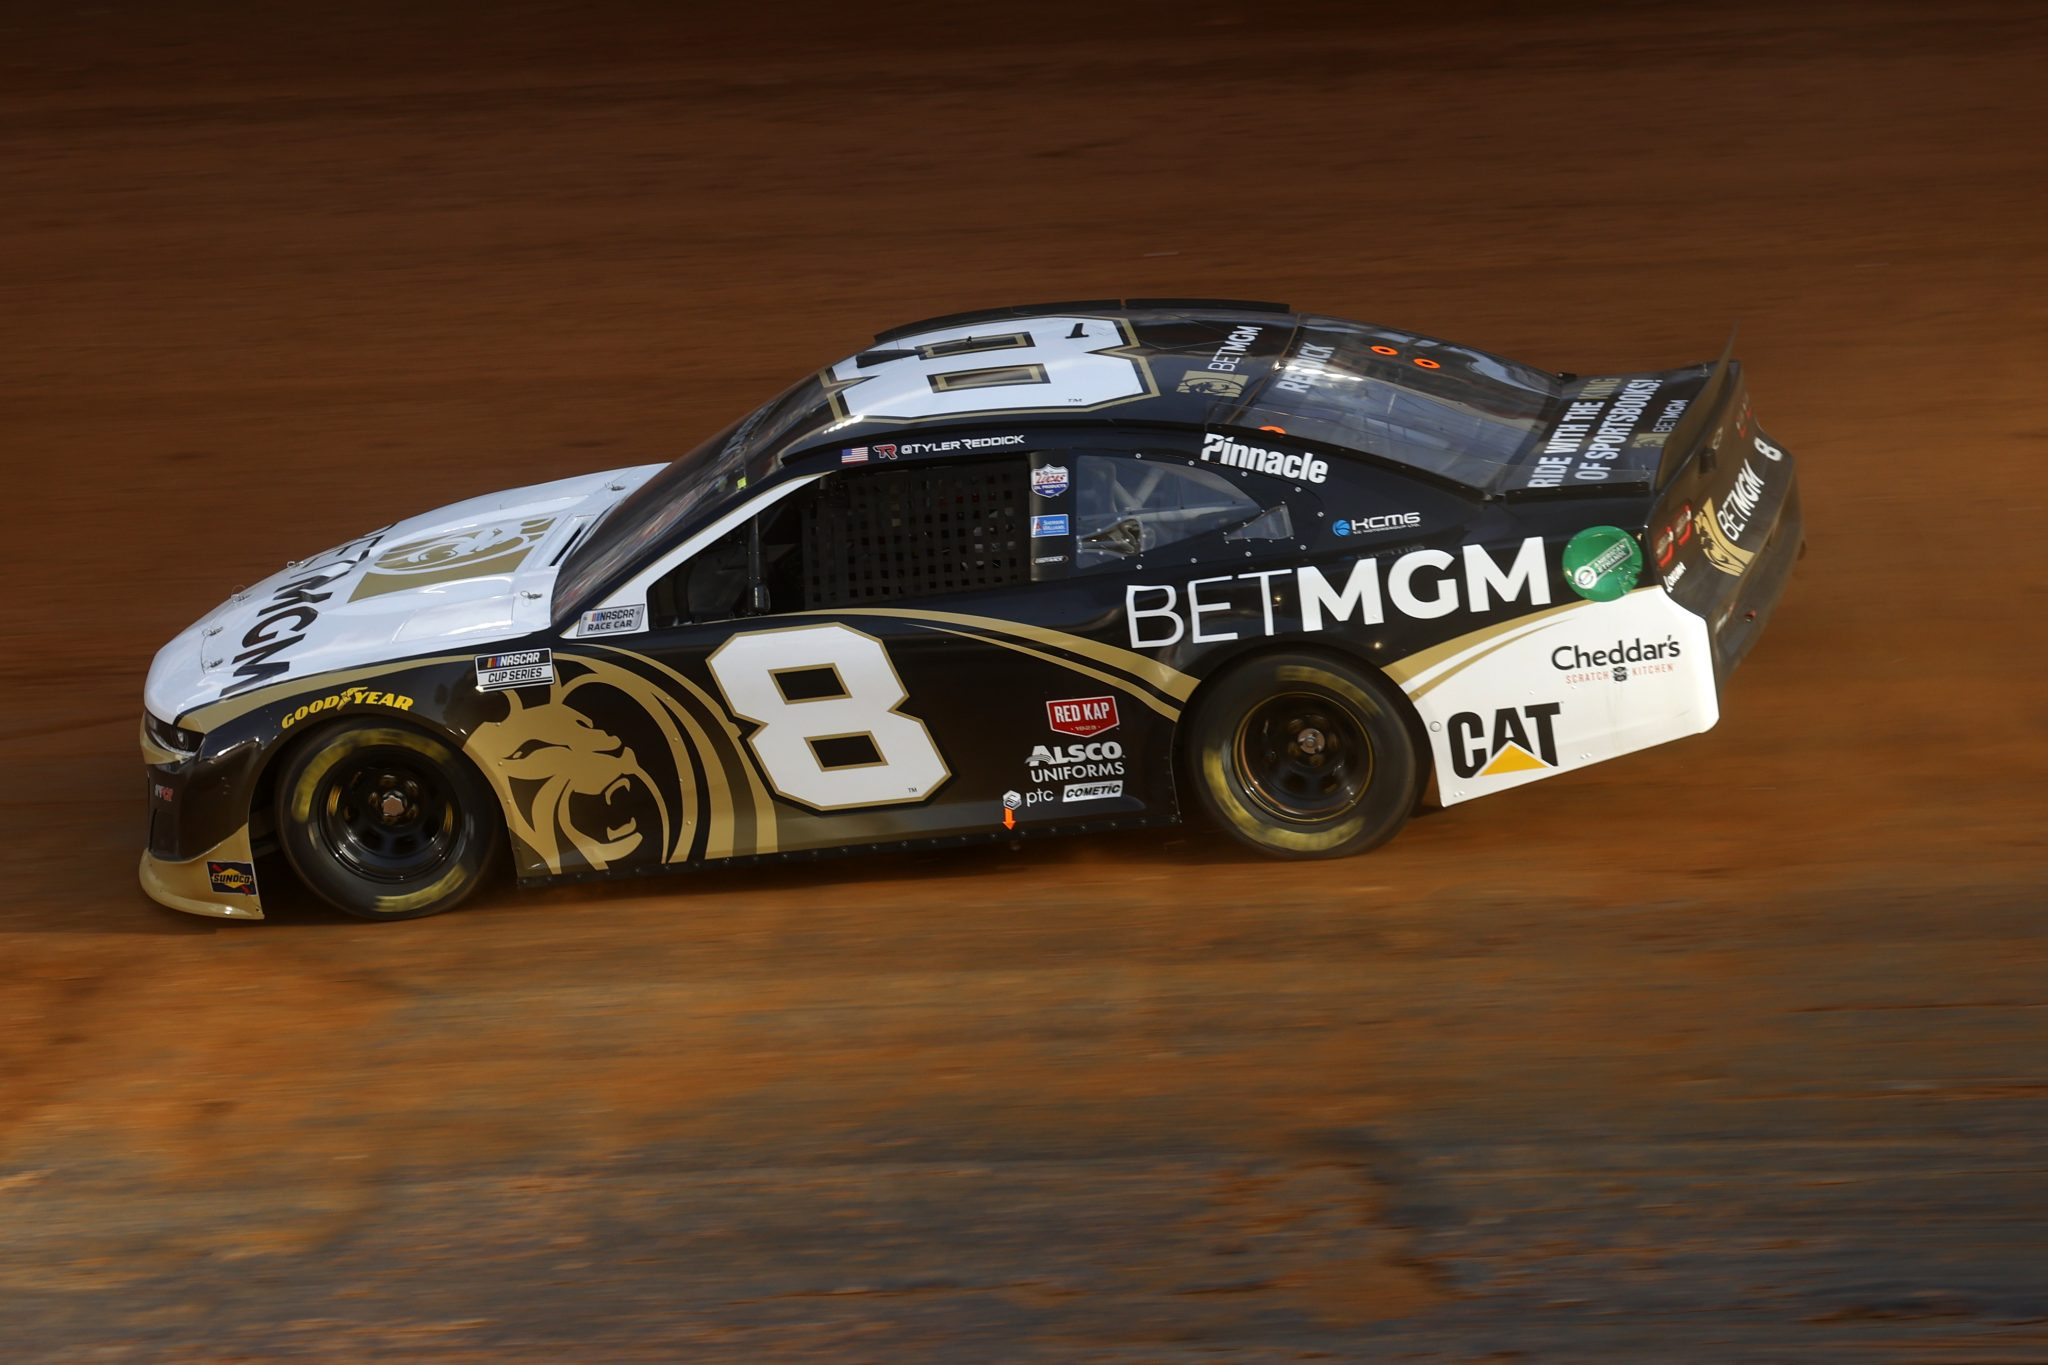 BRISTOL, TENNESSEE - MARCH 26: Tyler Reddick, driver of the #8 BetMGM Chevrolet, drives during practice for the NASCAR Cup Series Food City Dirt Race at Bristol Motor Speedway on March 26, 2021 in Bristol, Tennessee. (Photo by Chris Graythen/Getty Images) | Getty Images